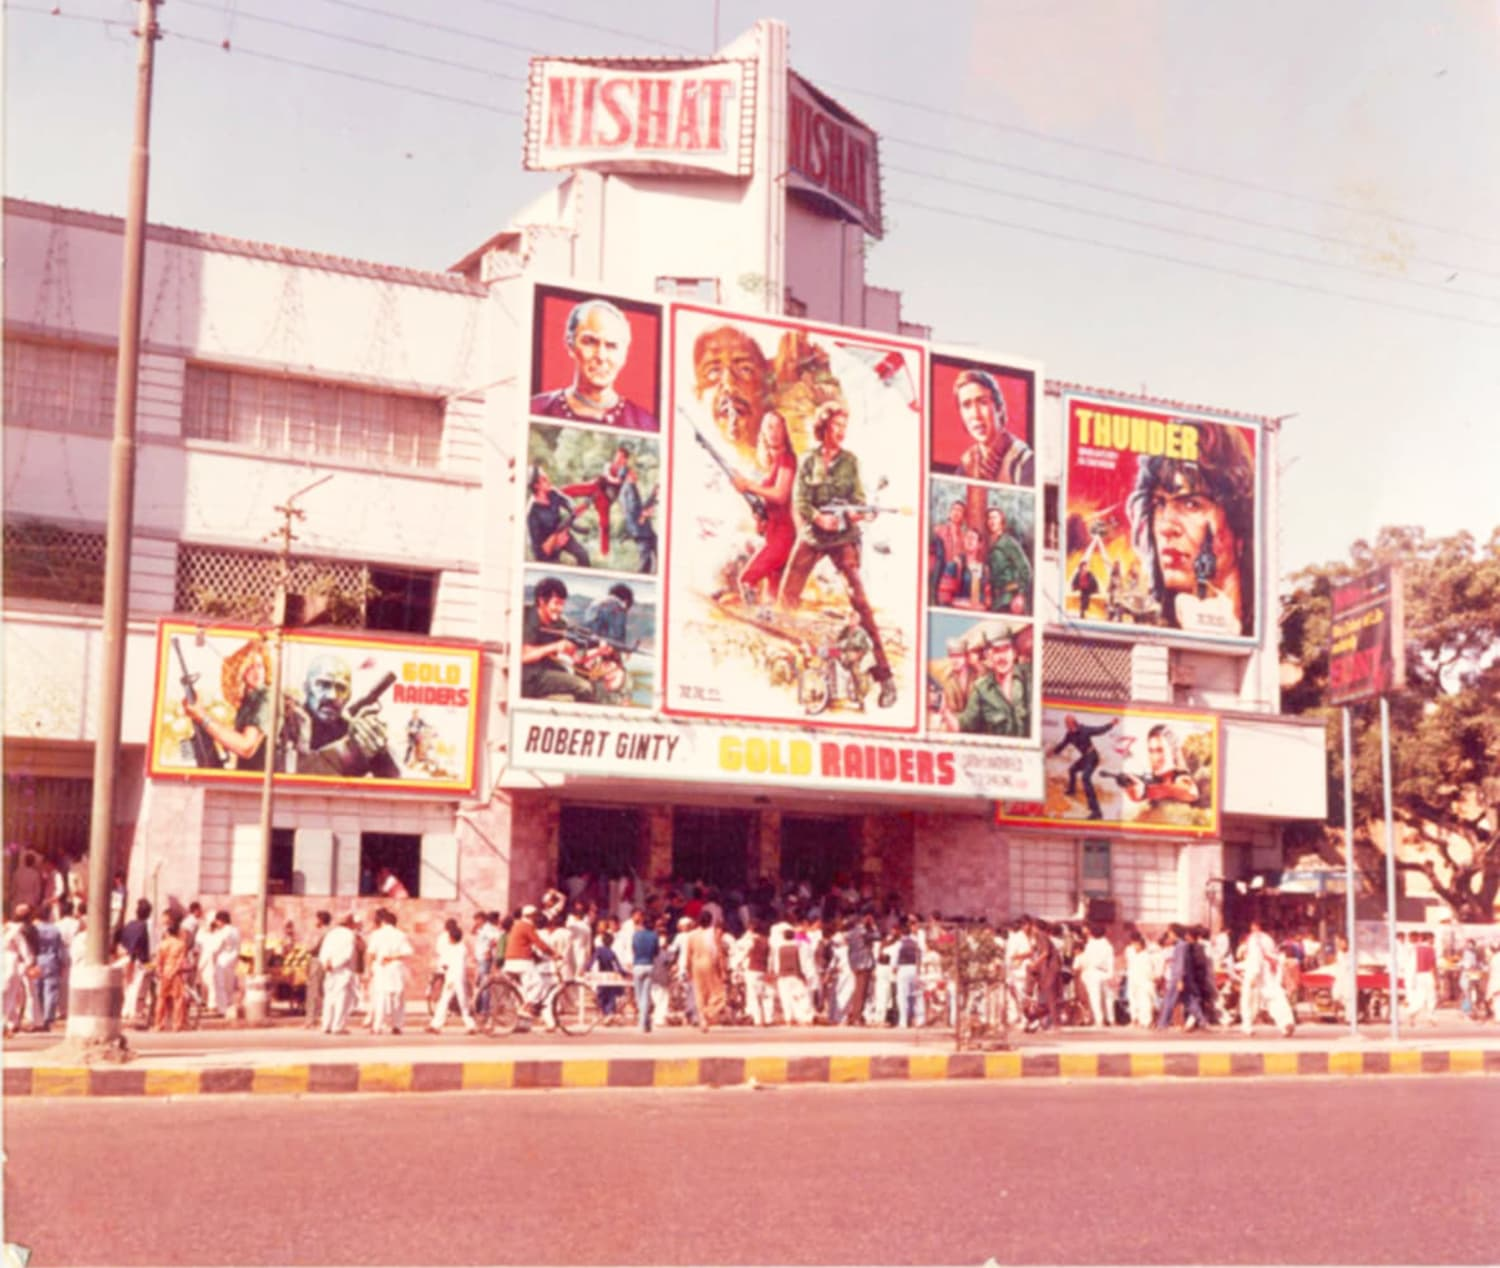 Karachi's famous Nishat Cinema in 1974.